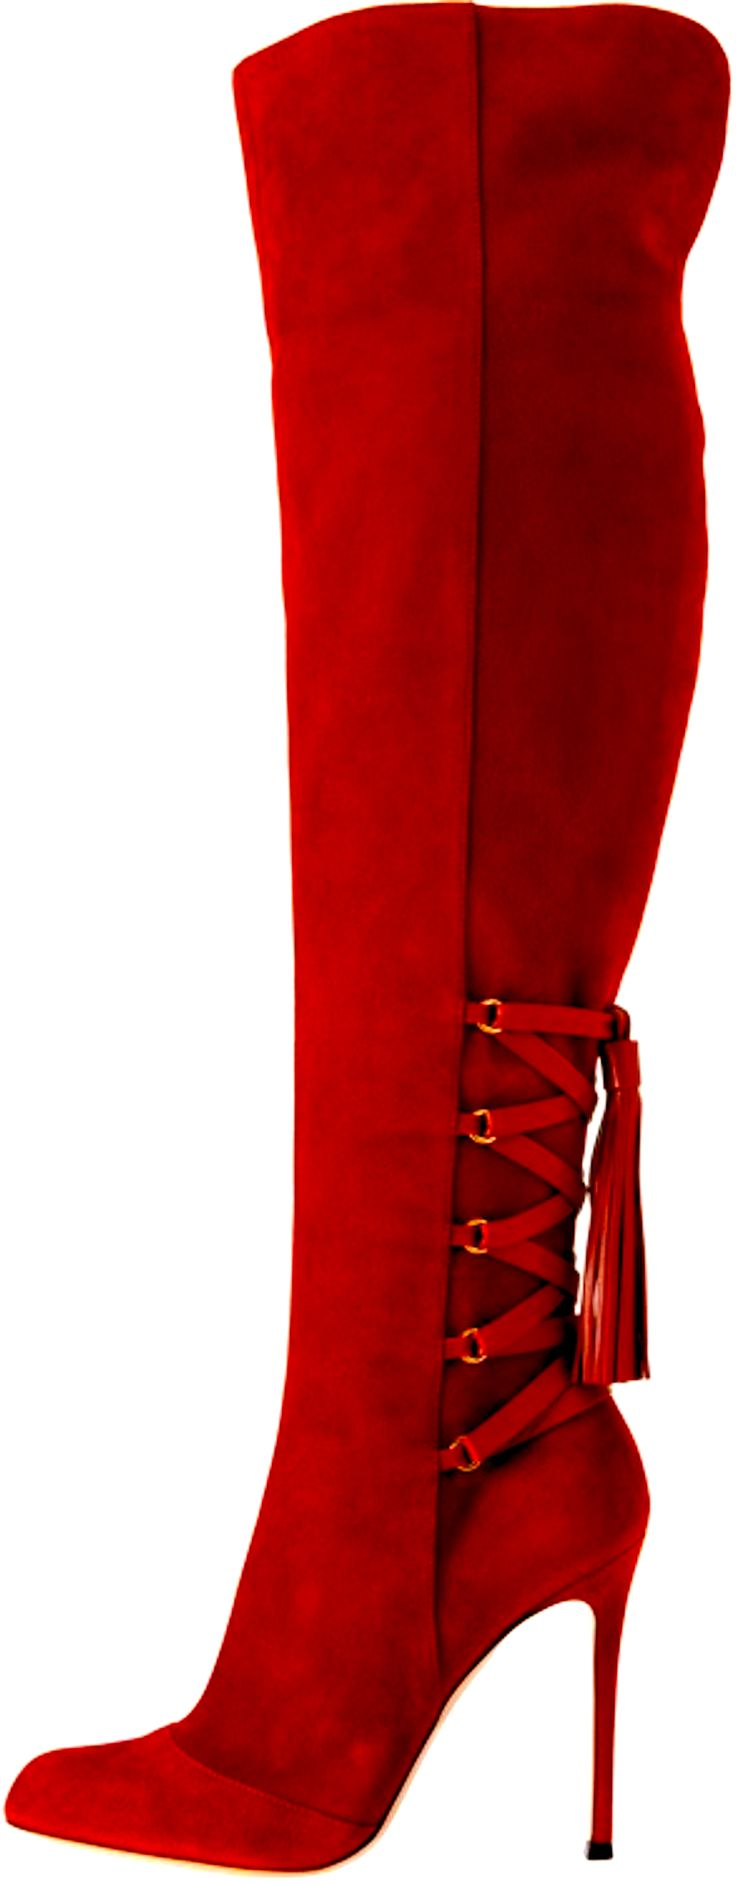 Gianvito Rossi Now that's a Red Boot. Could wear it with the red deck of cards dress. :D